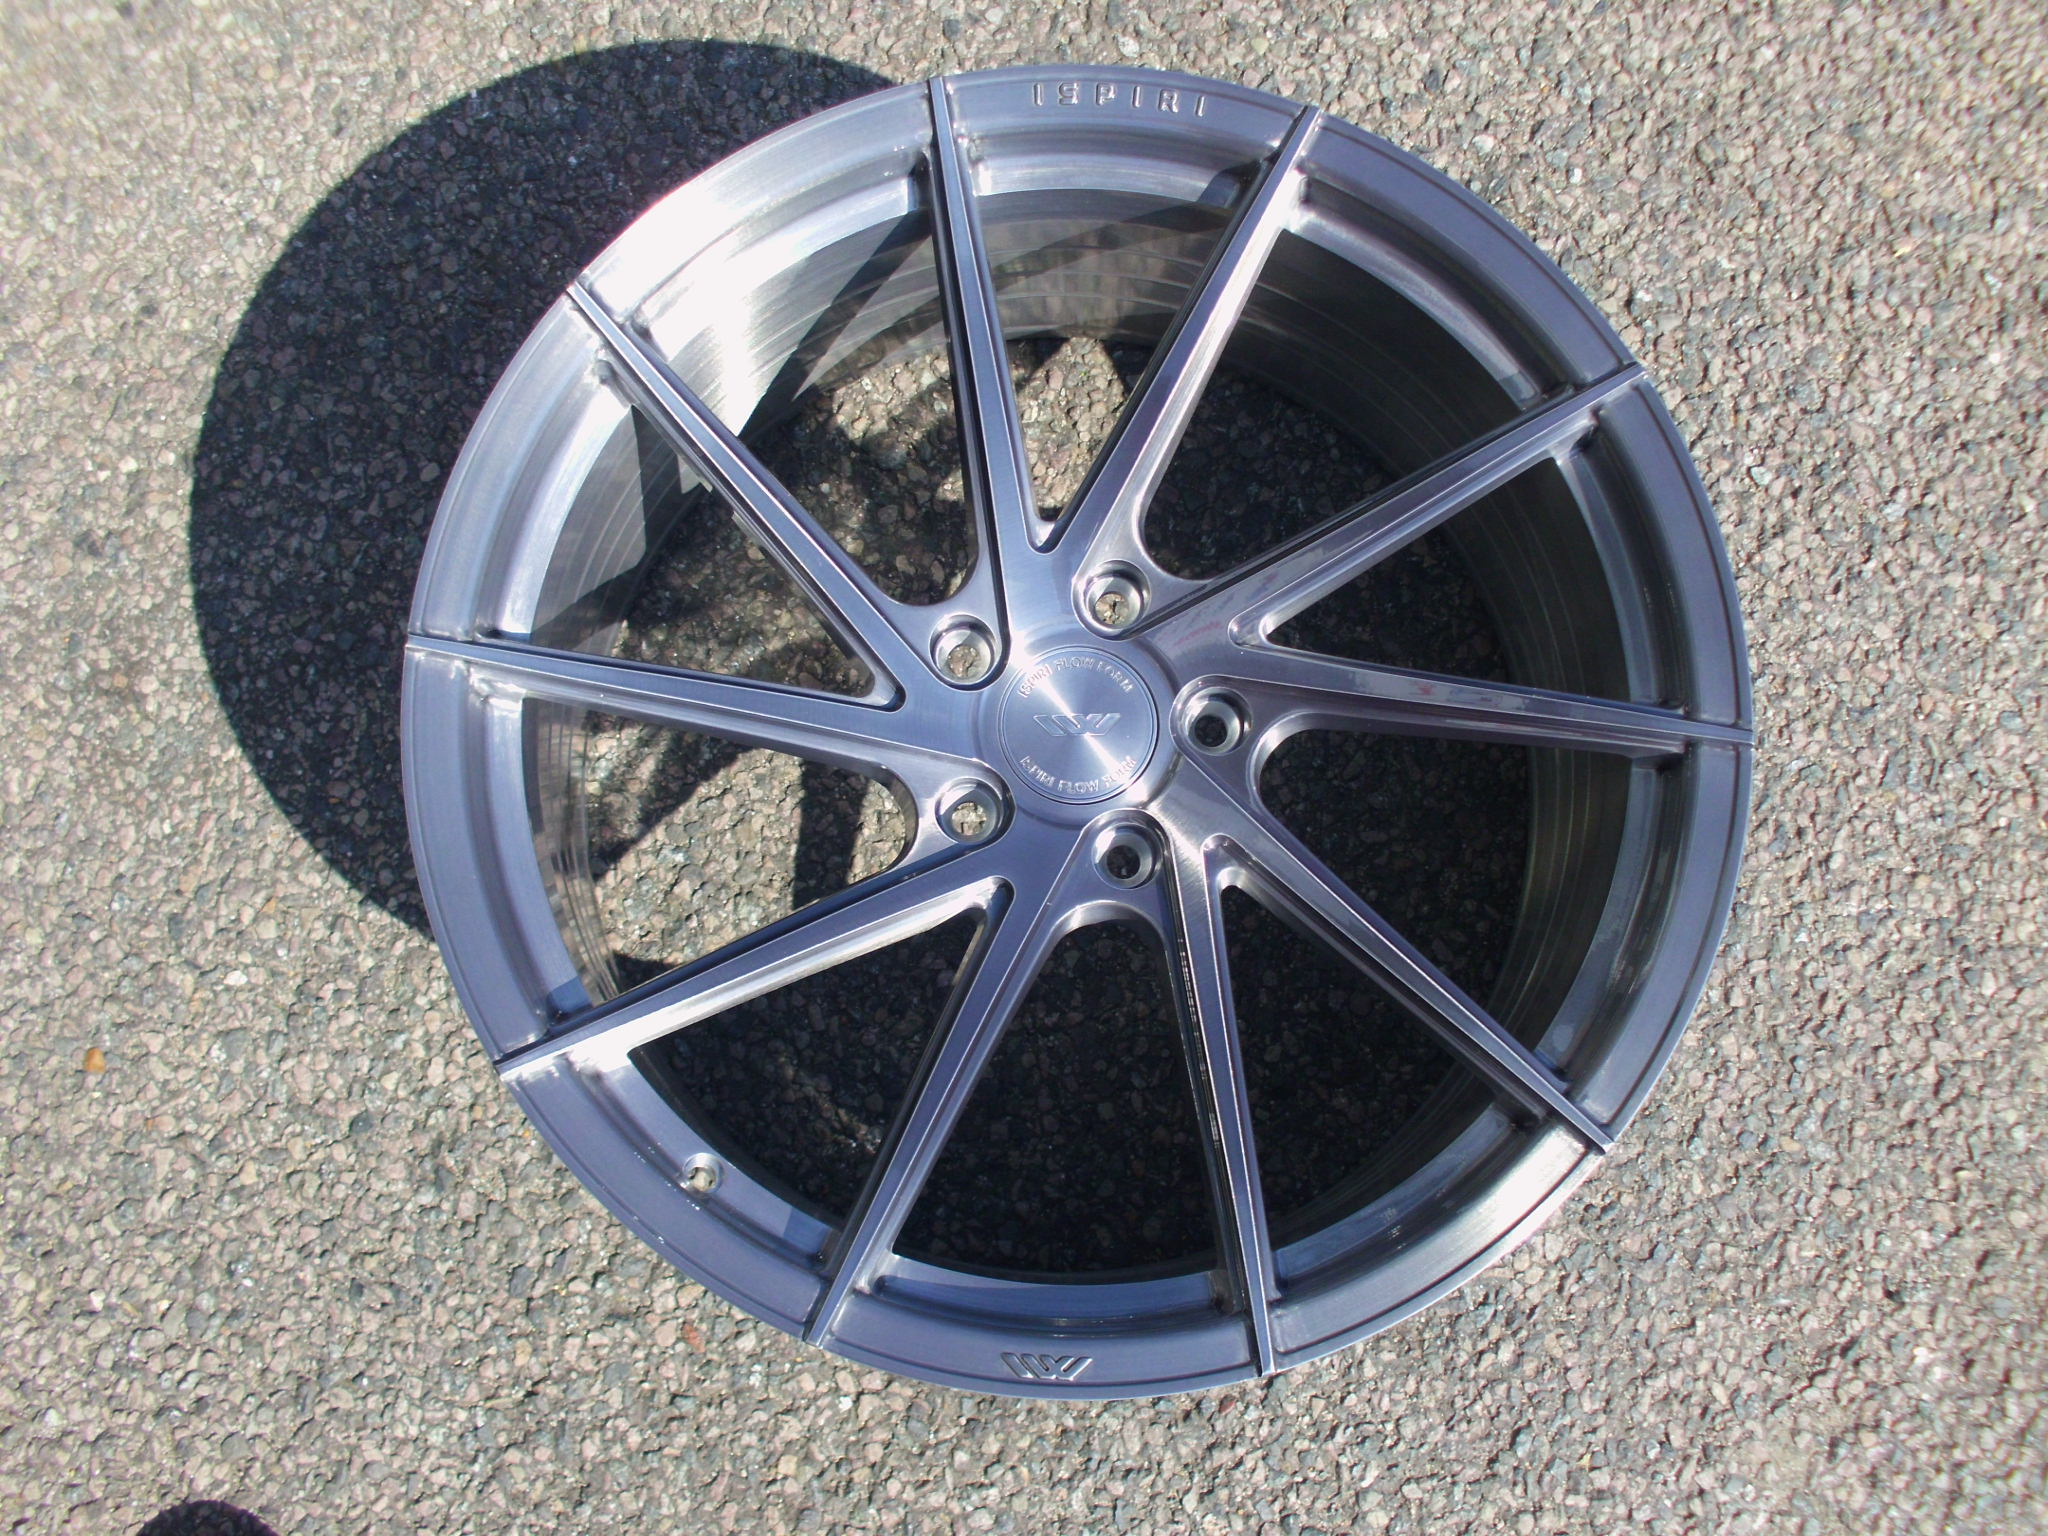 "NEW 20"" ISPIRI FFR1D MULTI-SPOKE DIRECTIONAL ALLOY WHEELS IN FULL BRUSHED CARBON TITANIUM, DEEPER CONCAVE 10.5"" REARS 5x120"